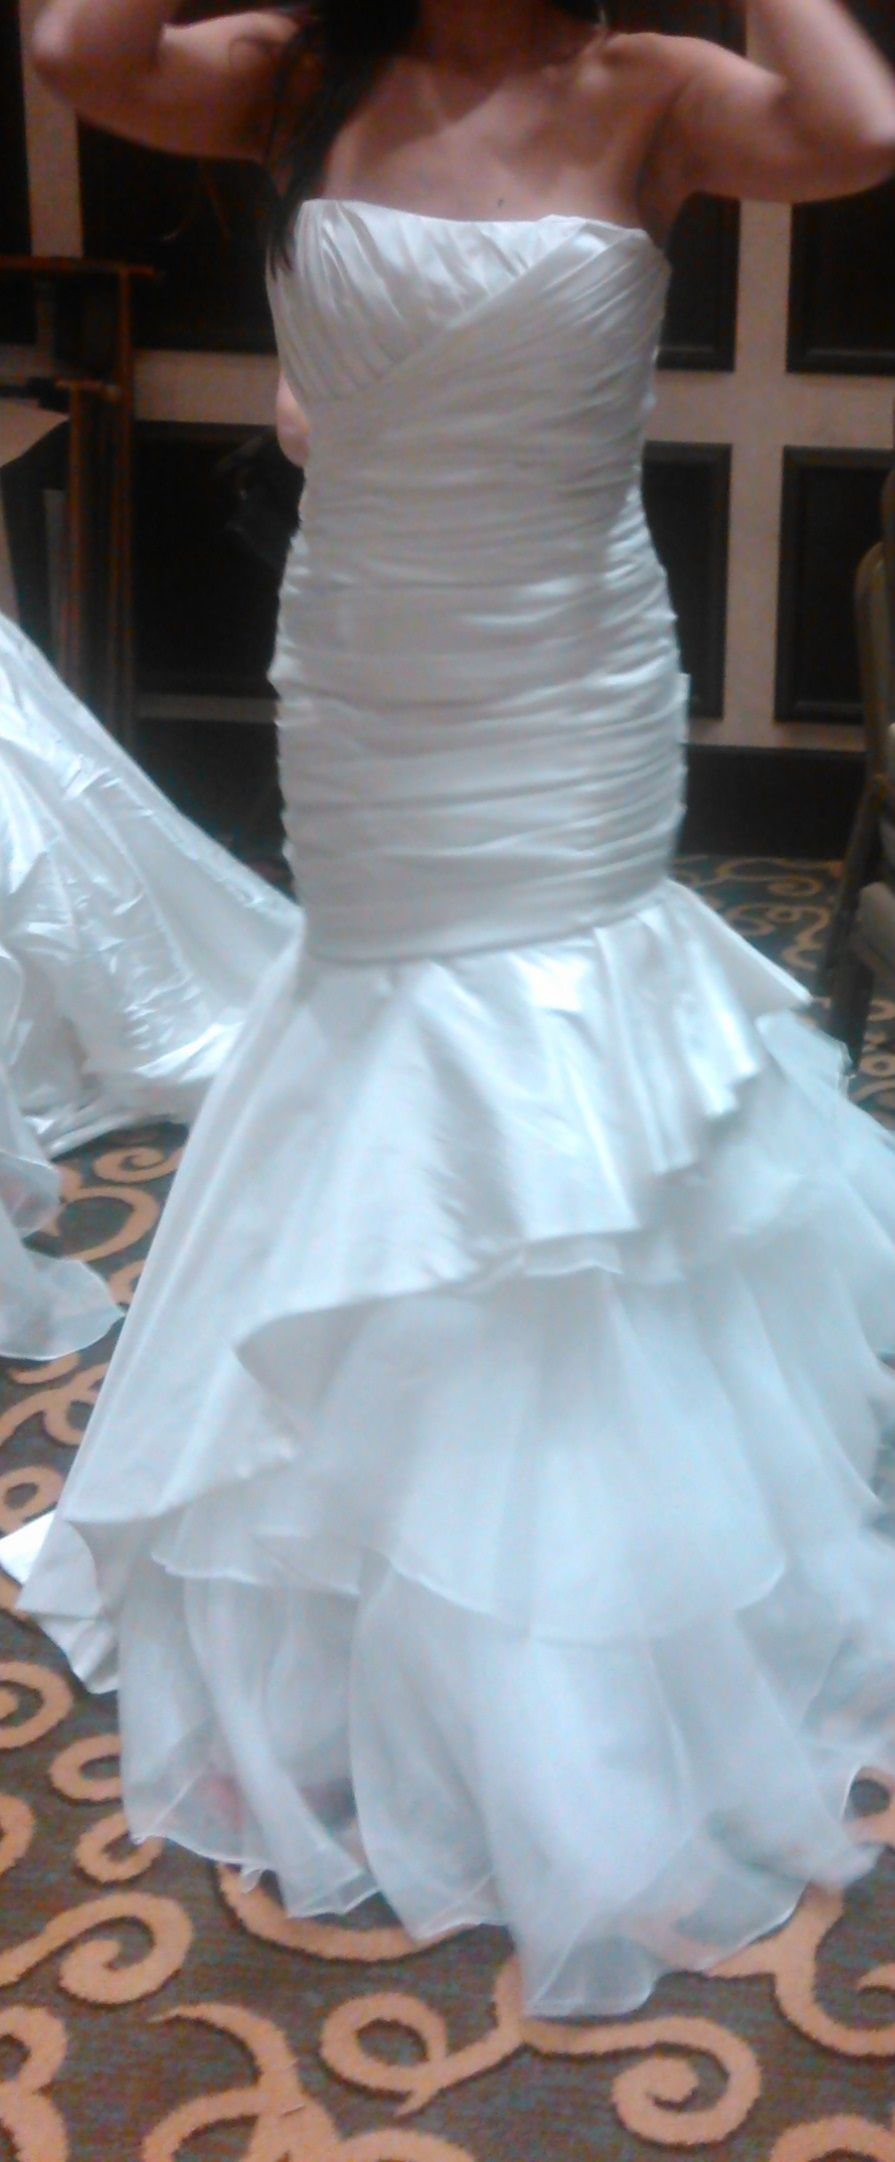 Brand new never worn or altered dress with veil and jeweled belt